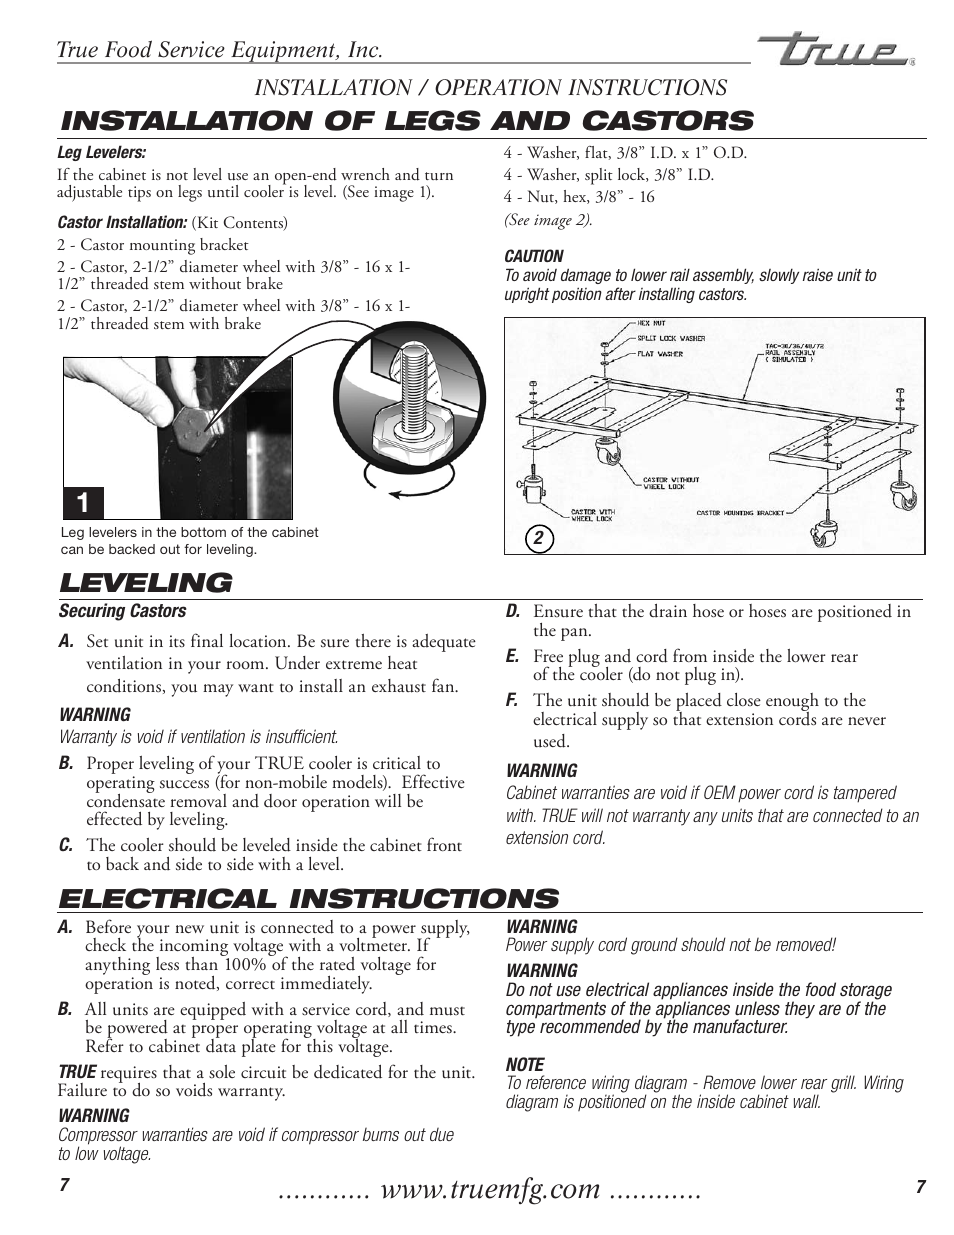 Electrical instructions leveling, Installation of legs and castors ...